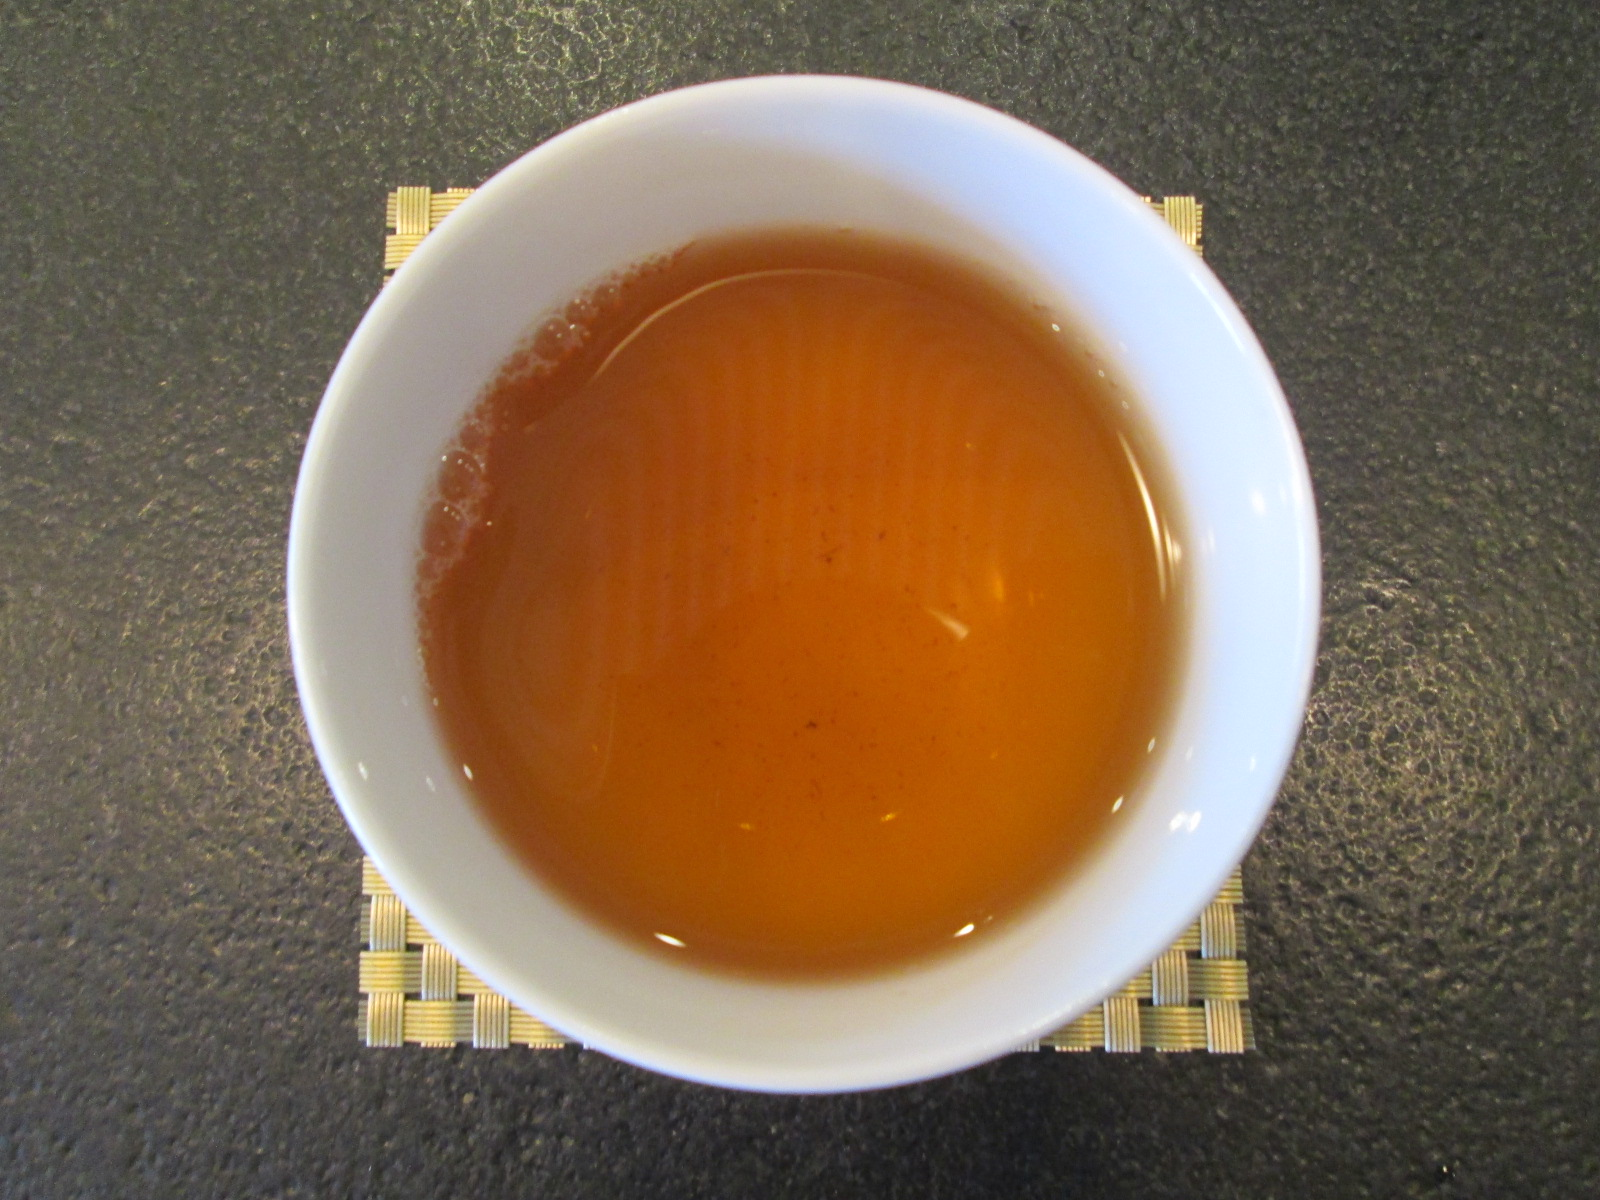 bo-houjicha at The Taste of Tea